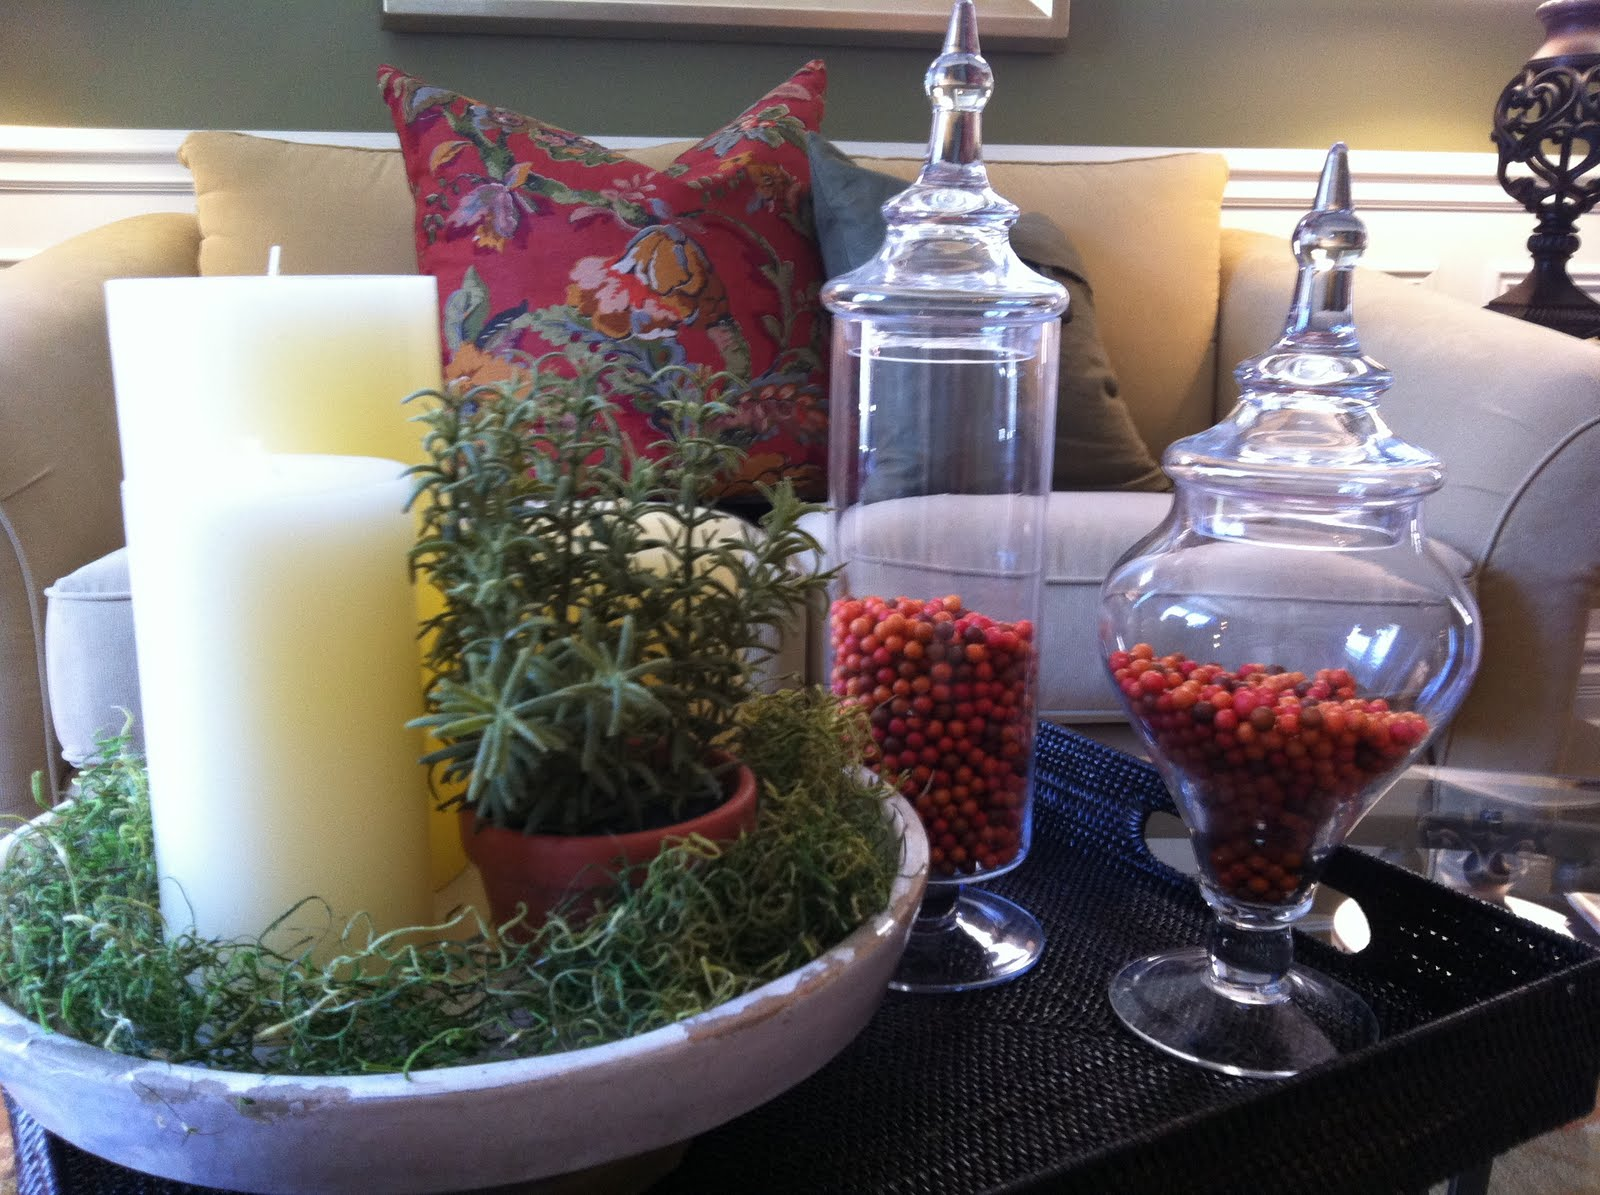 Creative juices fall vase fillers for my apothecary jars reviewsmspy